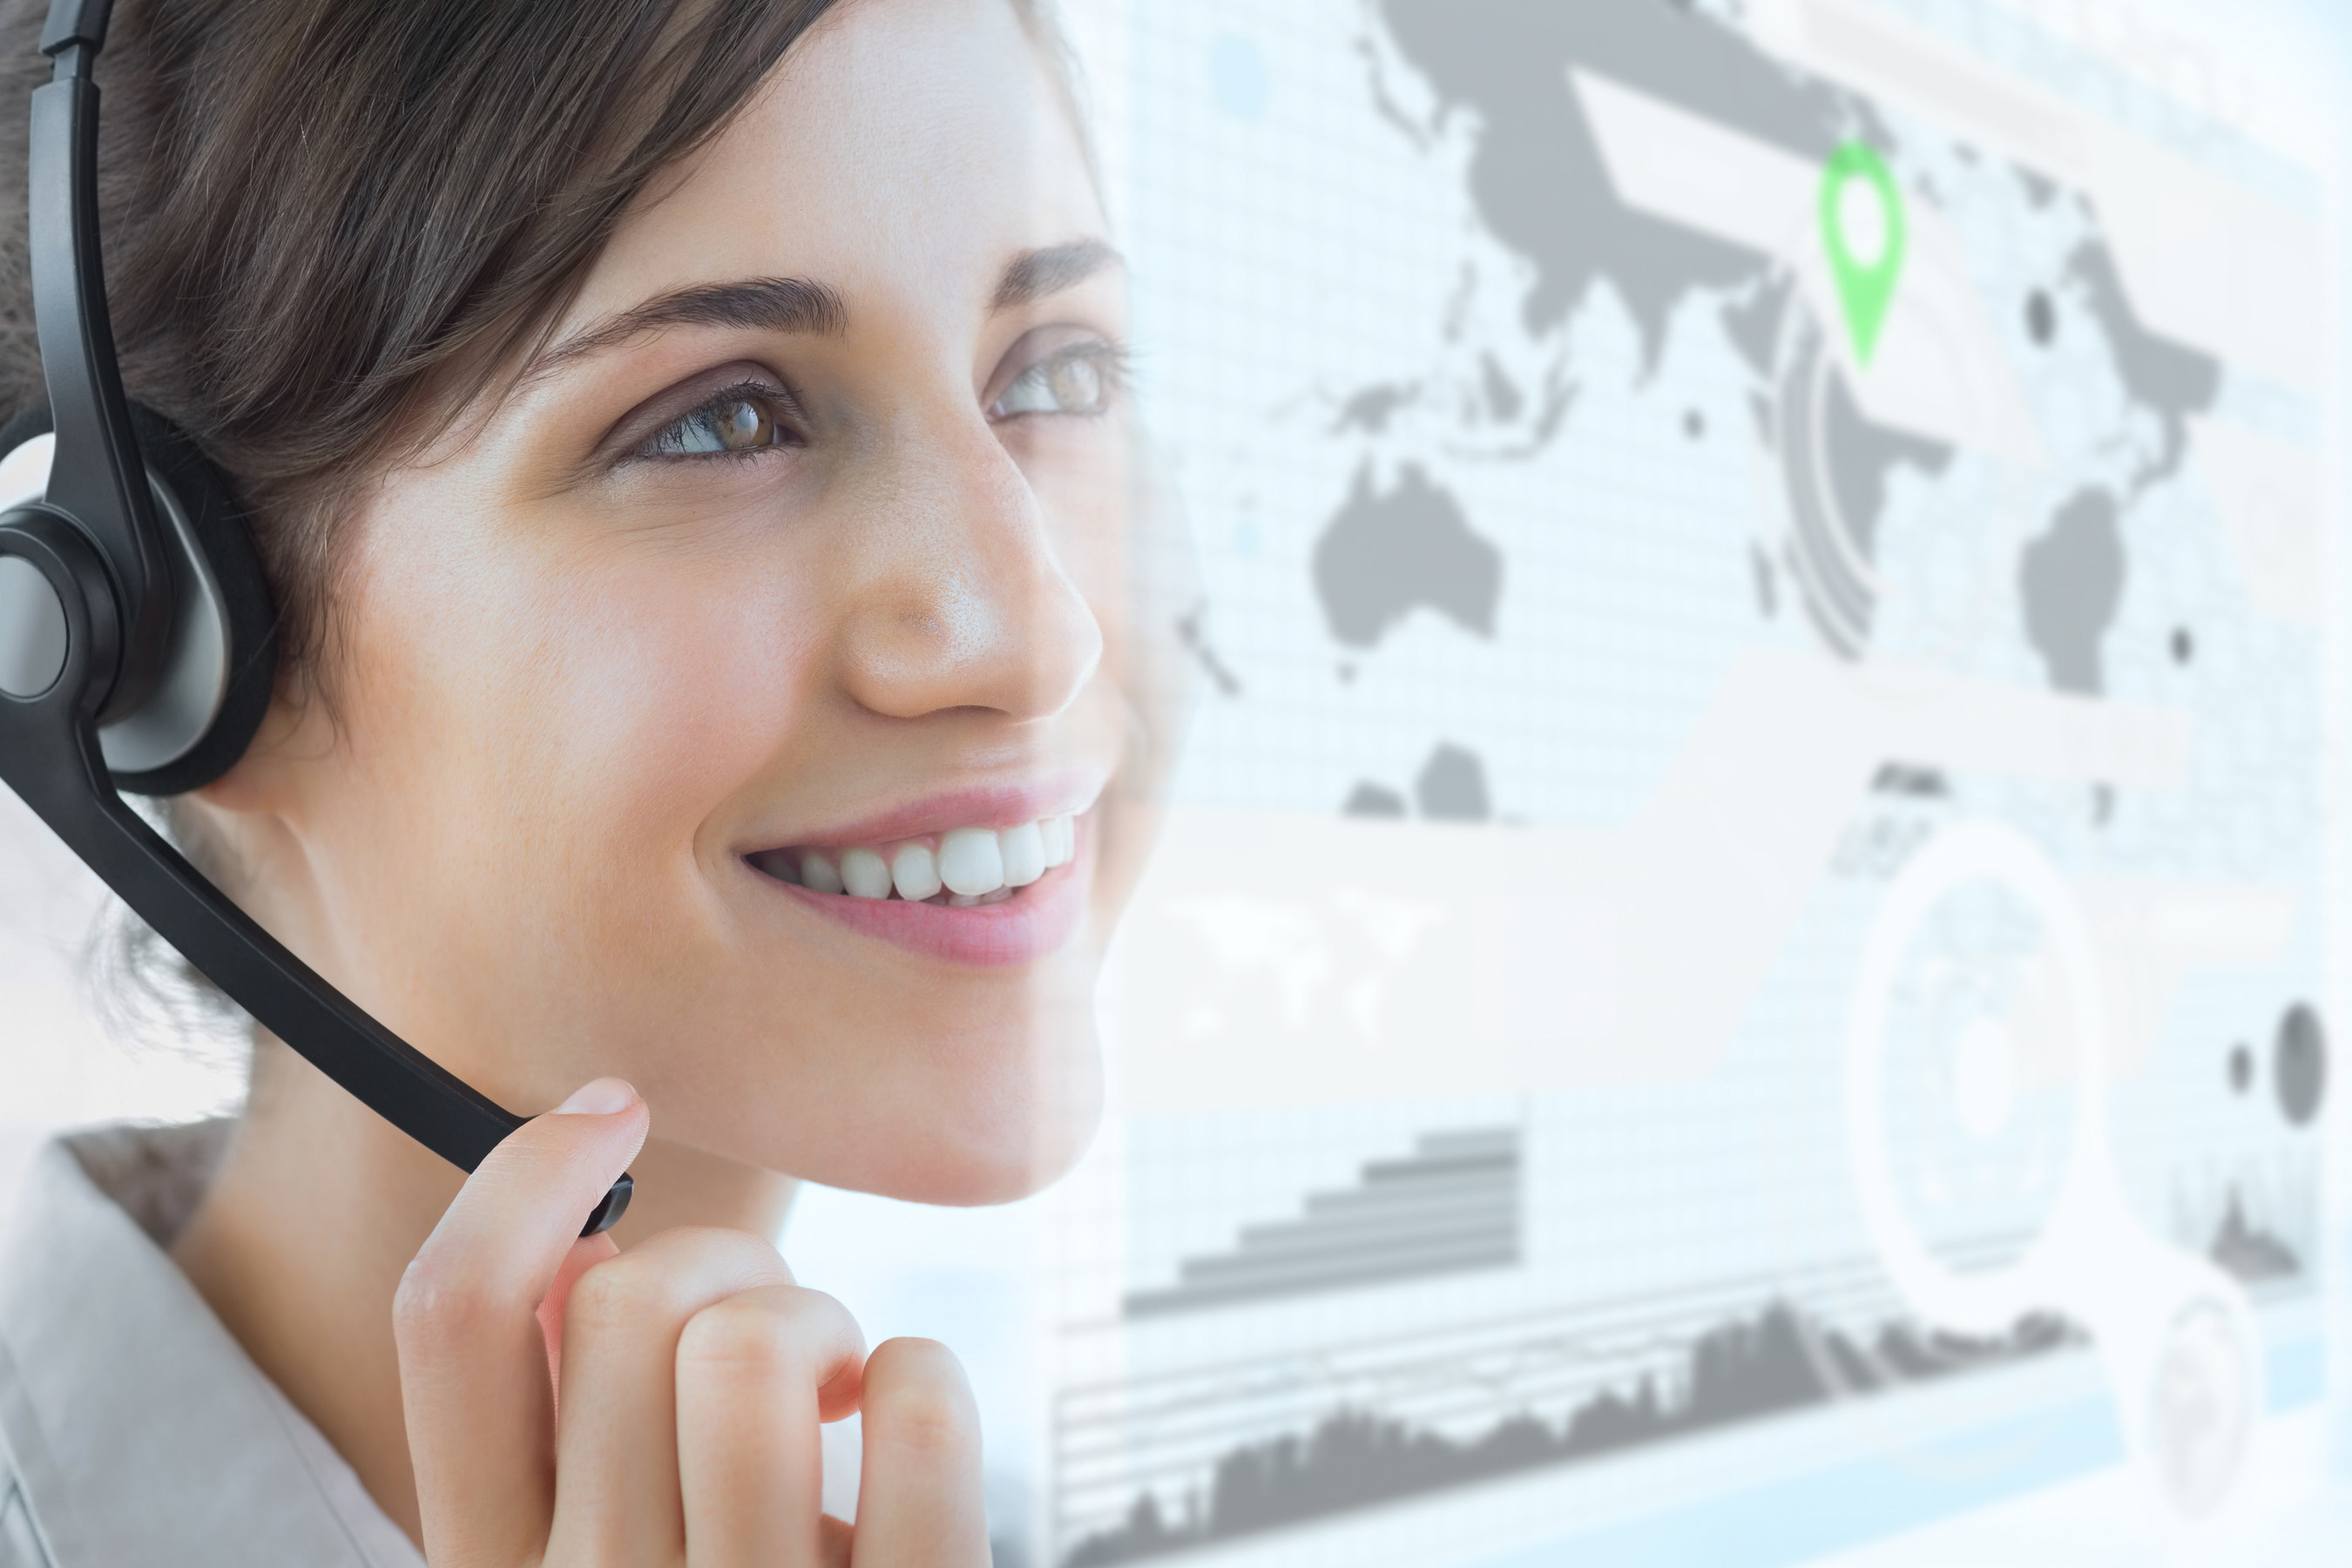 Contact Center Outsourcing Services Market in Latin America